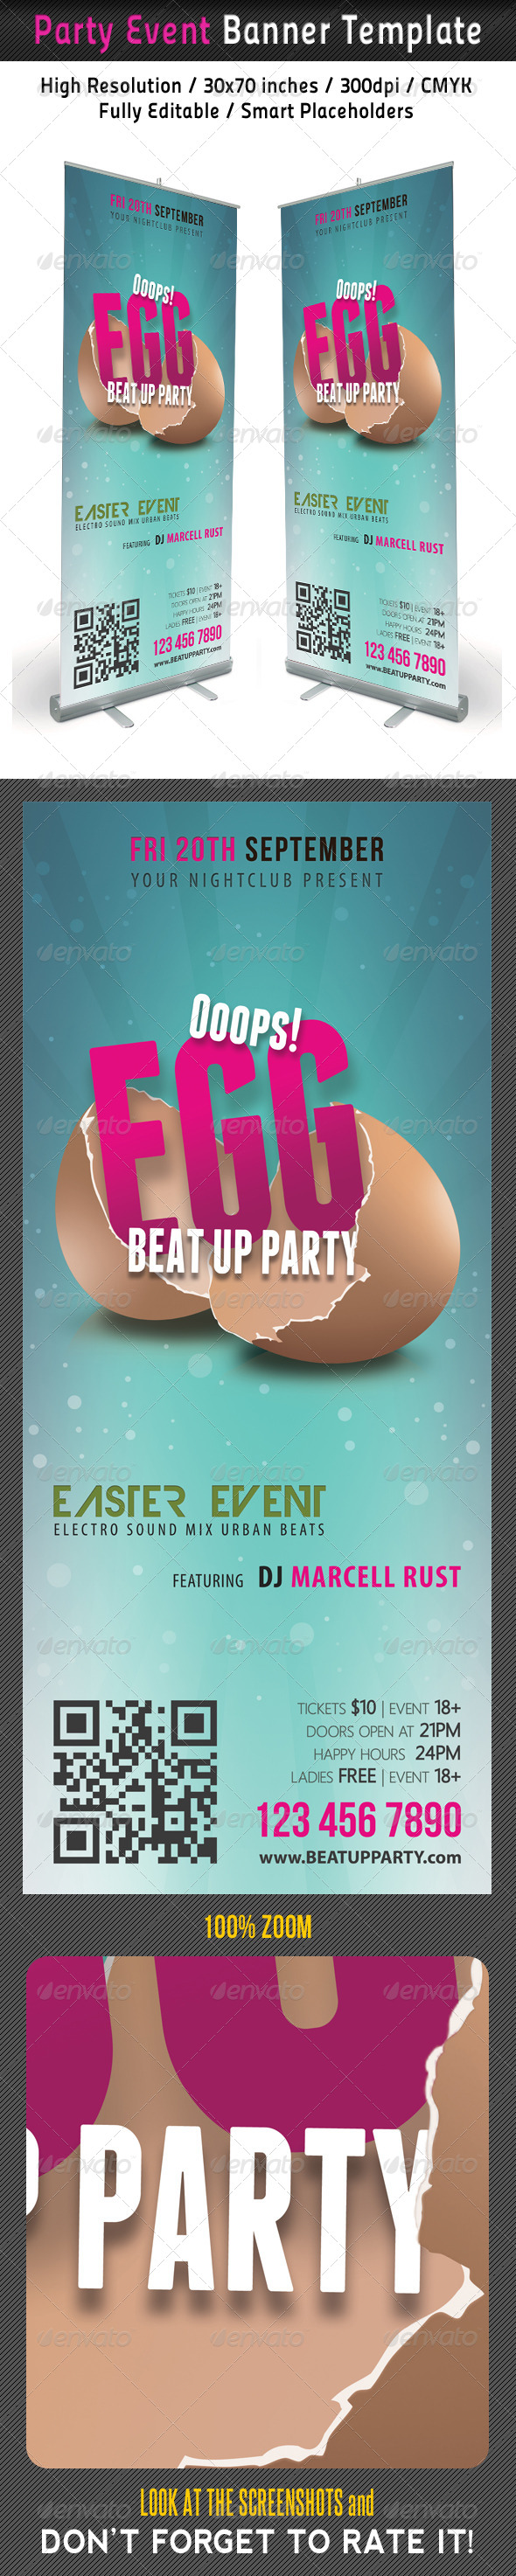 GraphicRiver Easter Break Up Party Banner Template 7440278